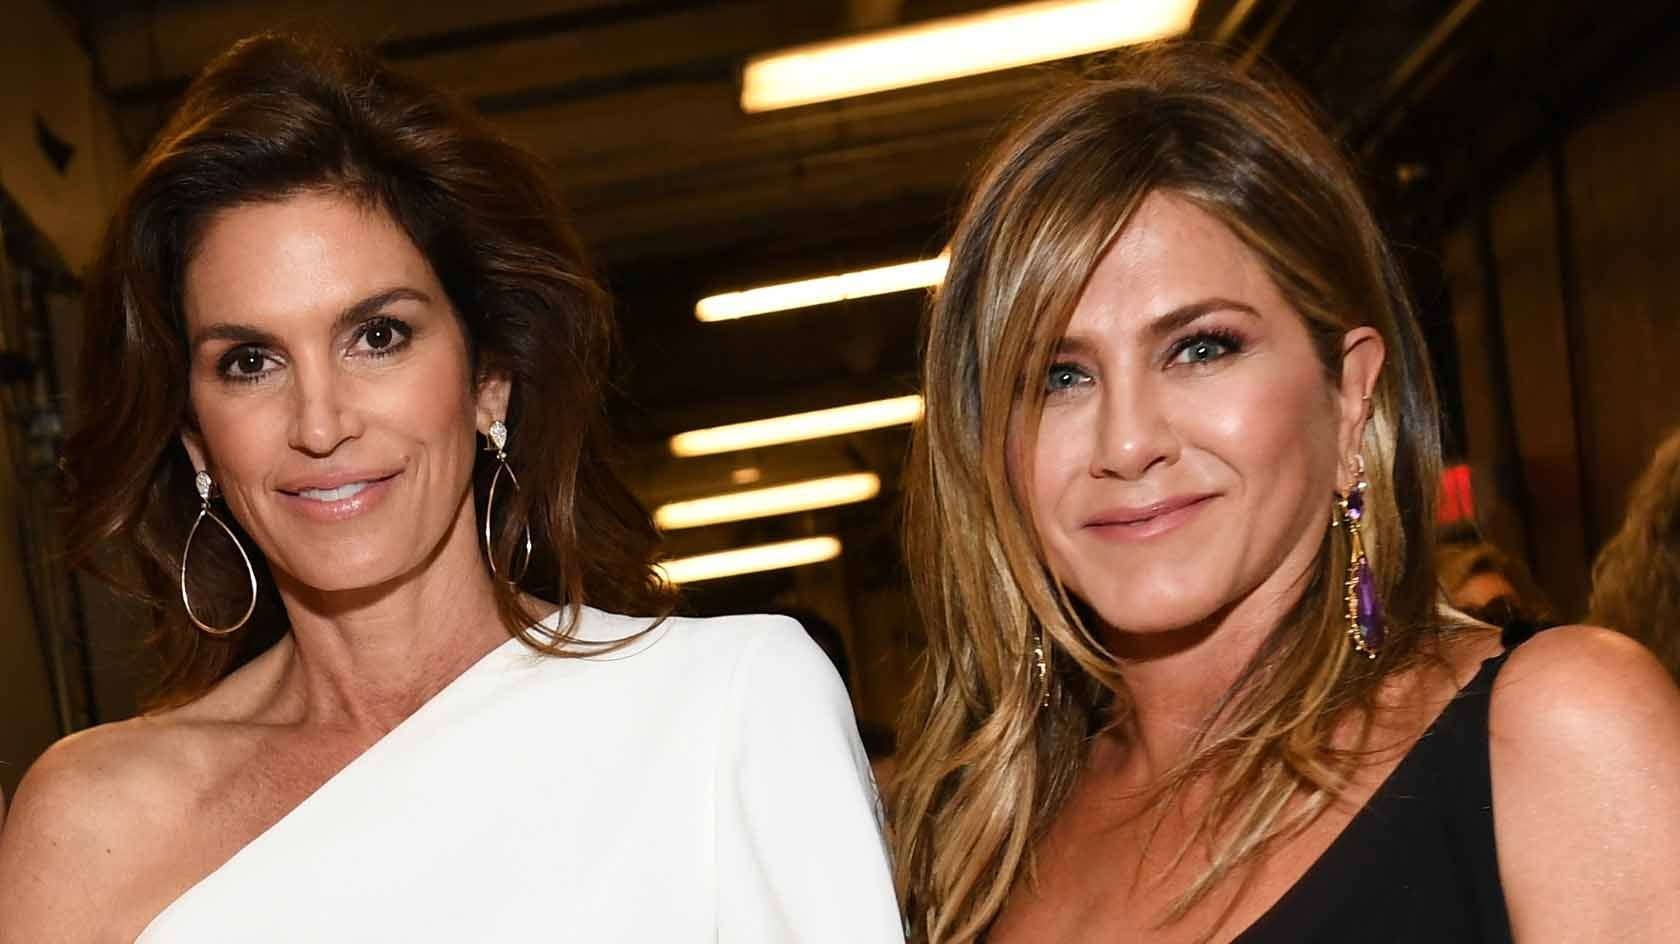 Cindy Crawford's Throwback Pic With Jennifer Aniston, Gabrielle Union and More Is a Whole 'Lot of Girl Power'